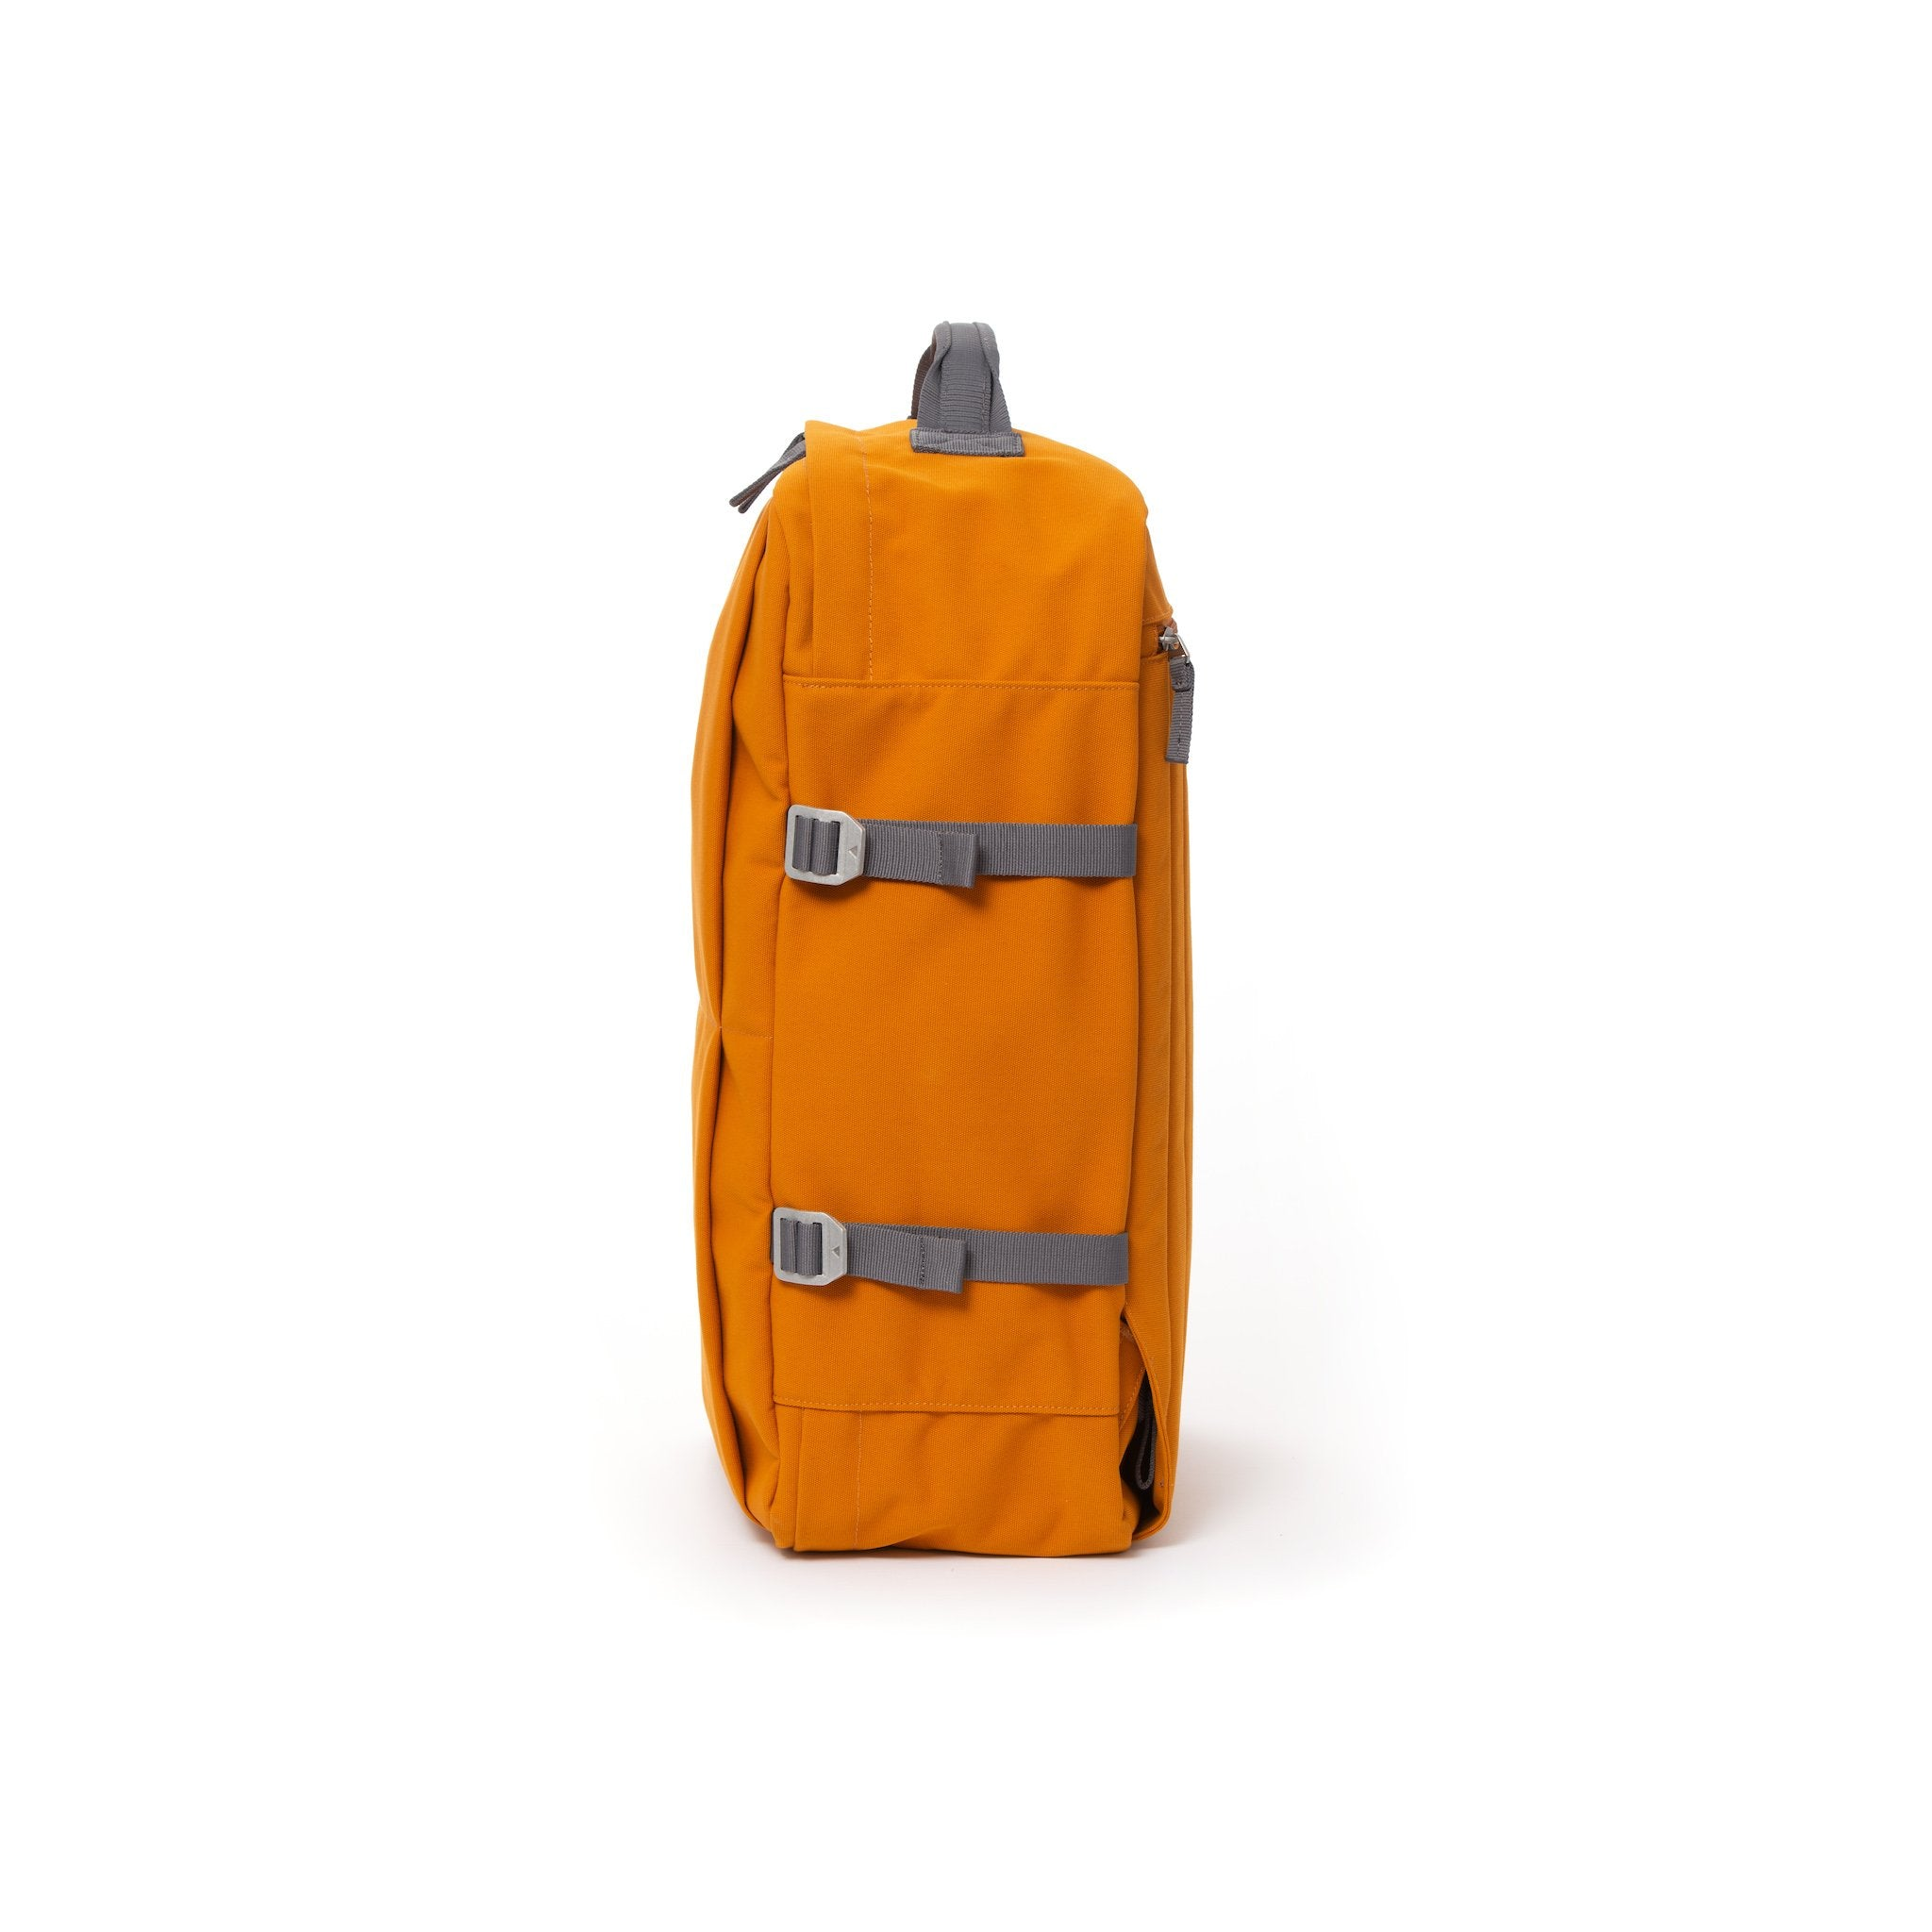 Orange waterproof canvas travel backpack with compression side straps.